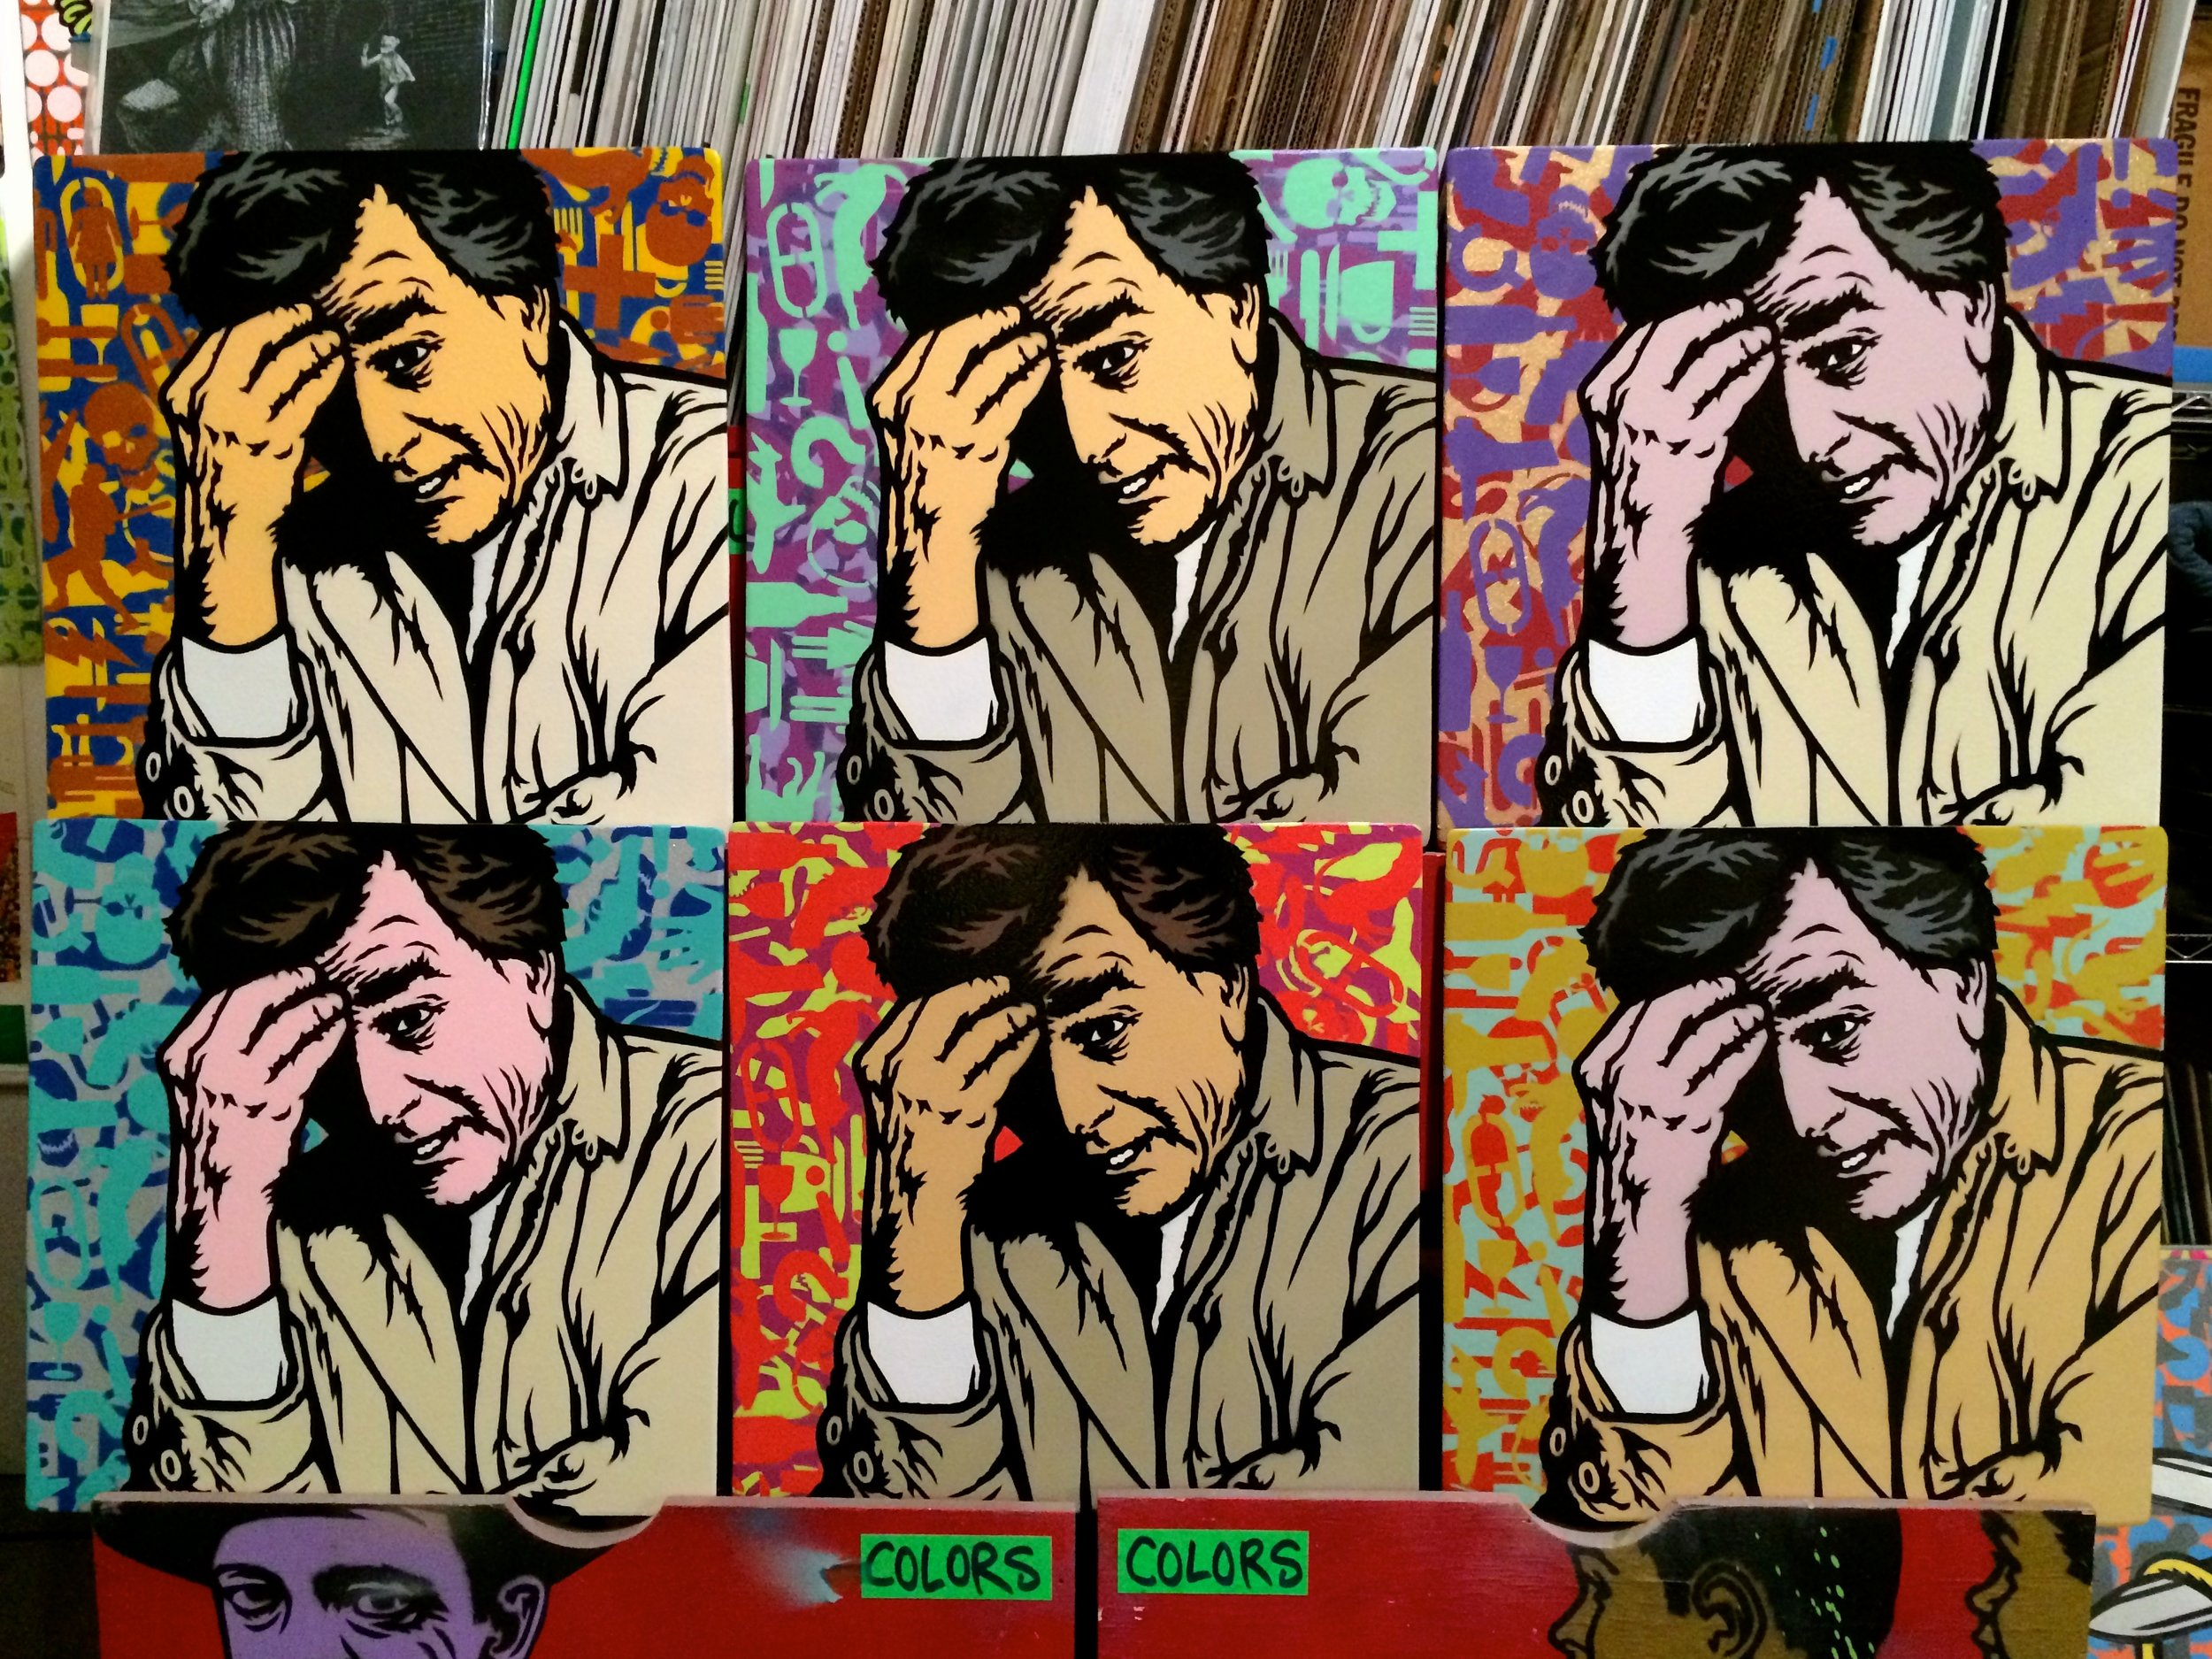 """""""One More Thing"""" (Columbo) Spray paint/stencil on wood panel, 20""""x20"""" Edition of 6"""